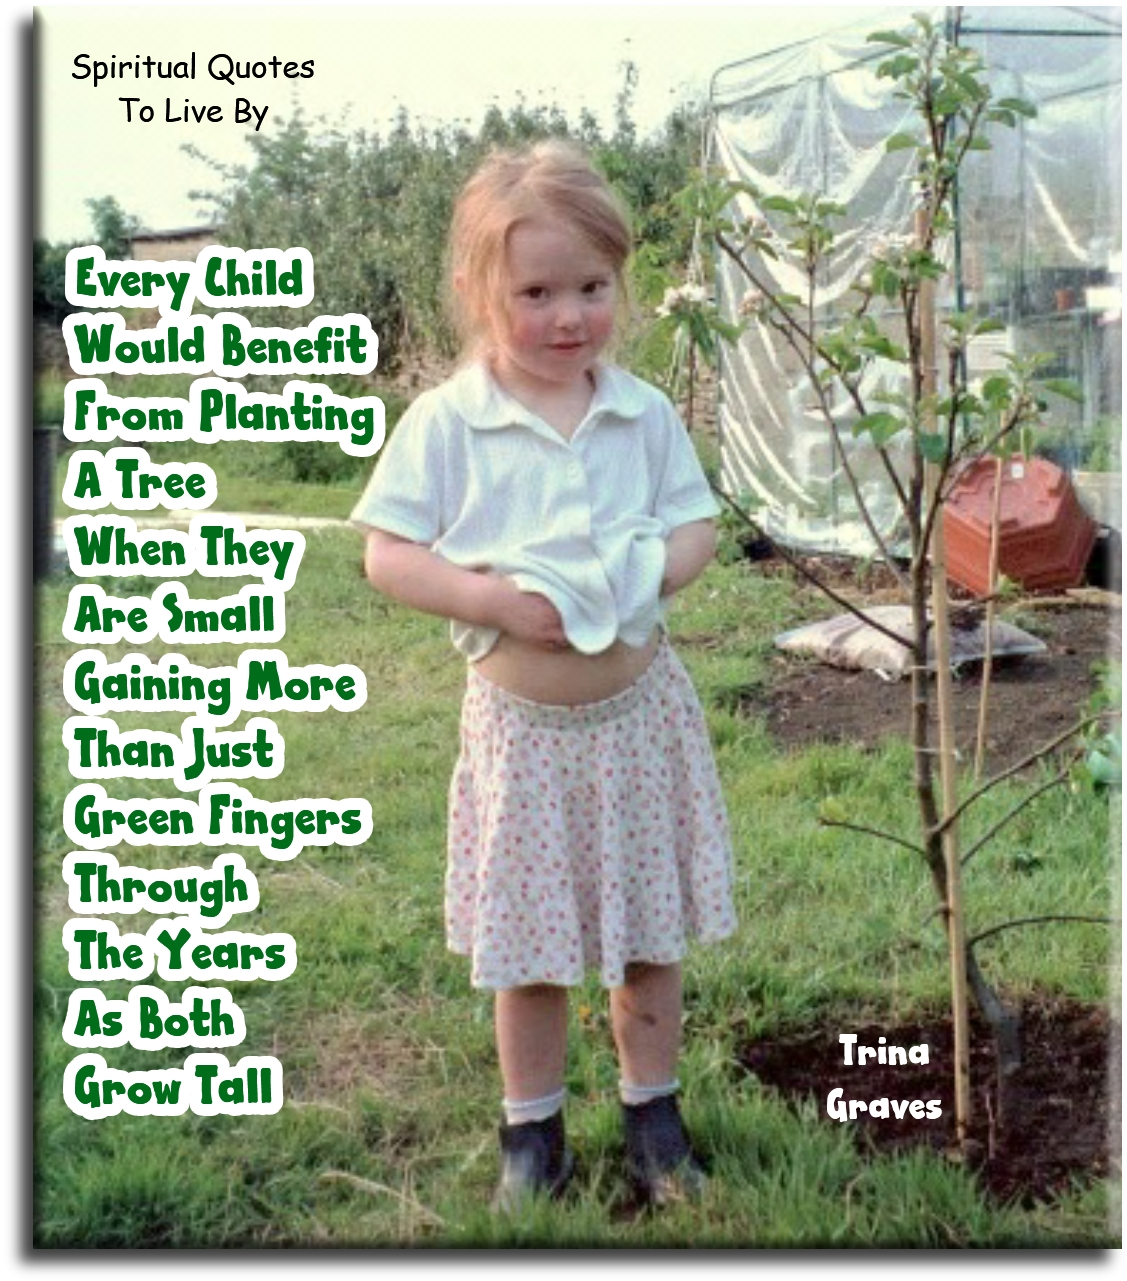 Every child would benefit from planting a tree when they are small, gaining more than just green fingers through the years as both grow tall - Trina Graves - Spiritual Quotes To Live By